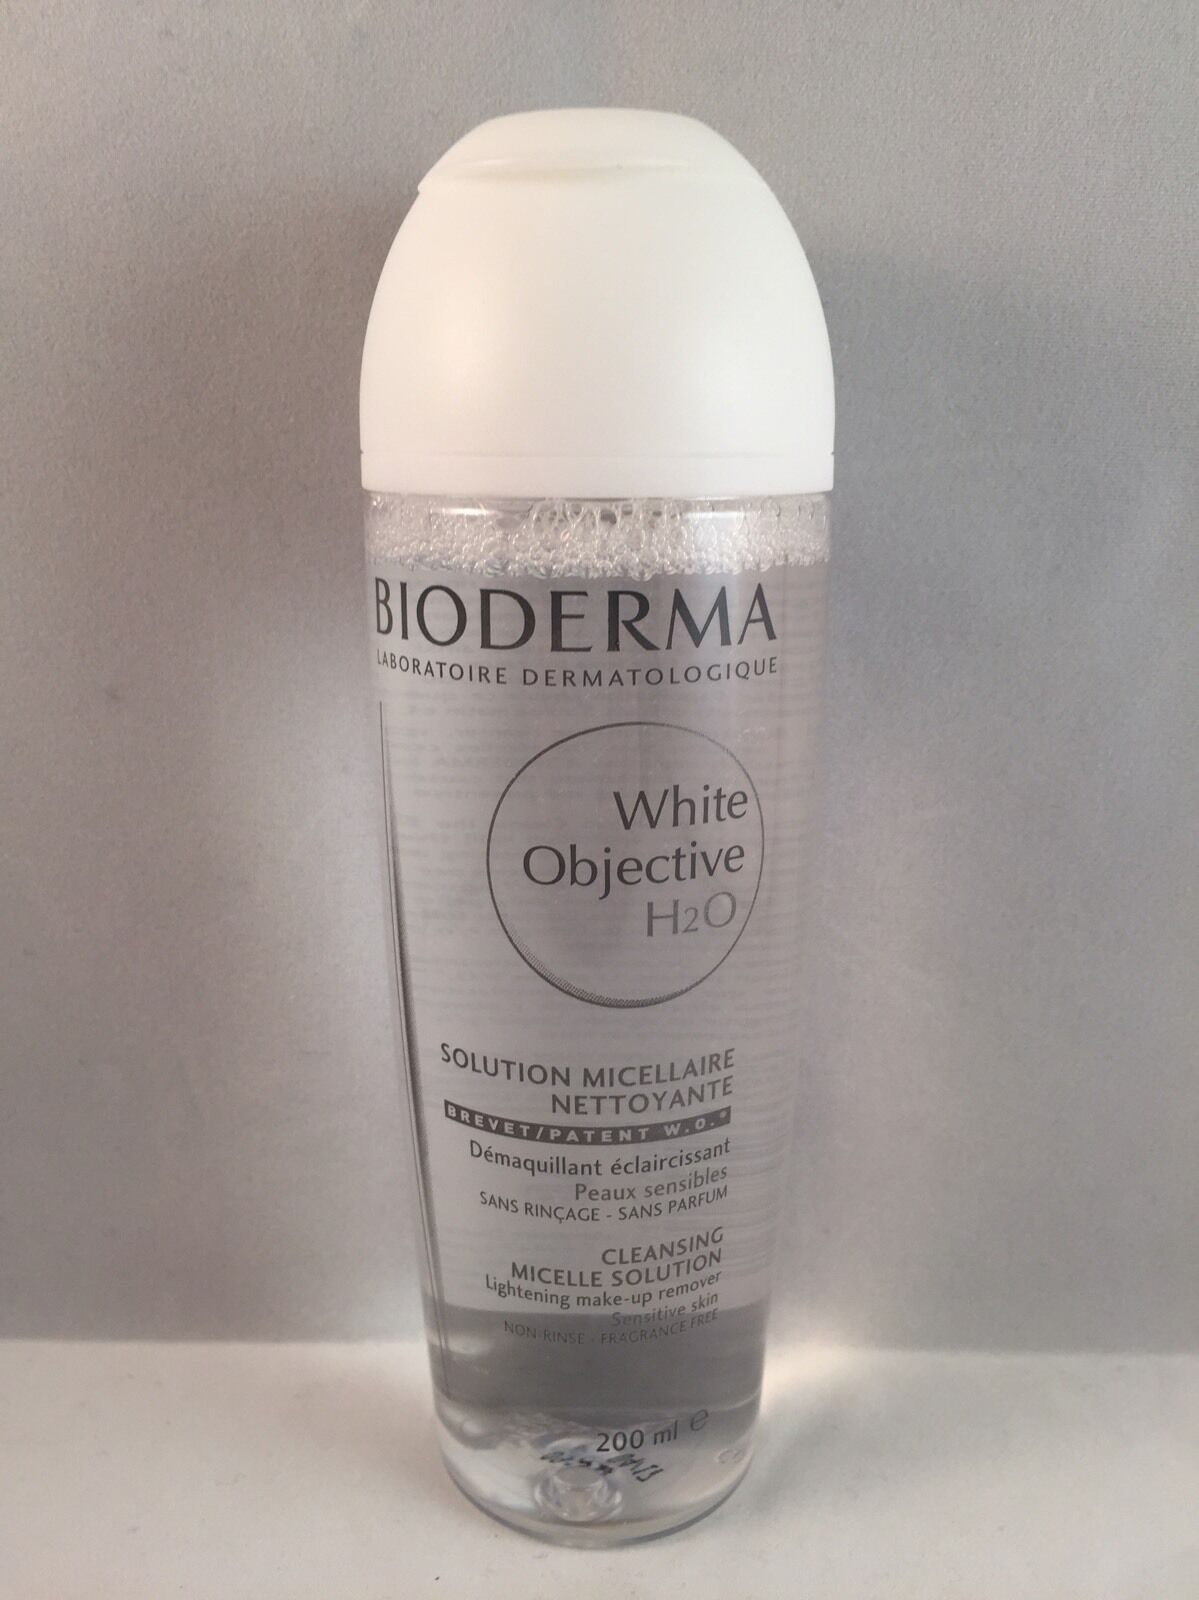 Bioderma White Objective H2o Cleansing Micelle Solution 200ml